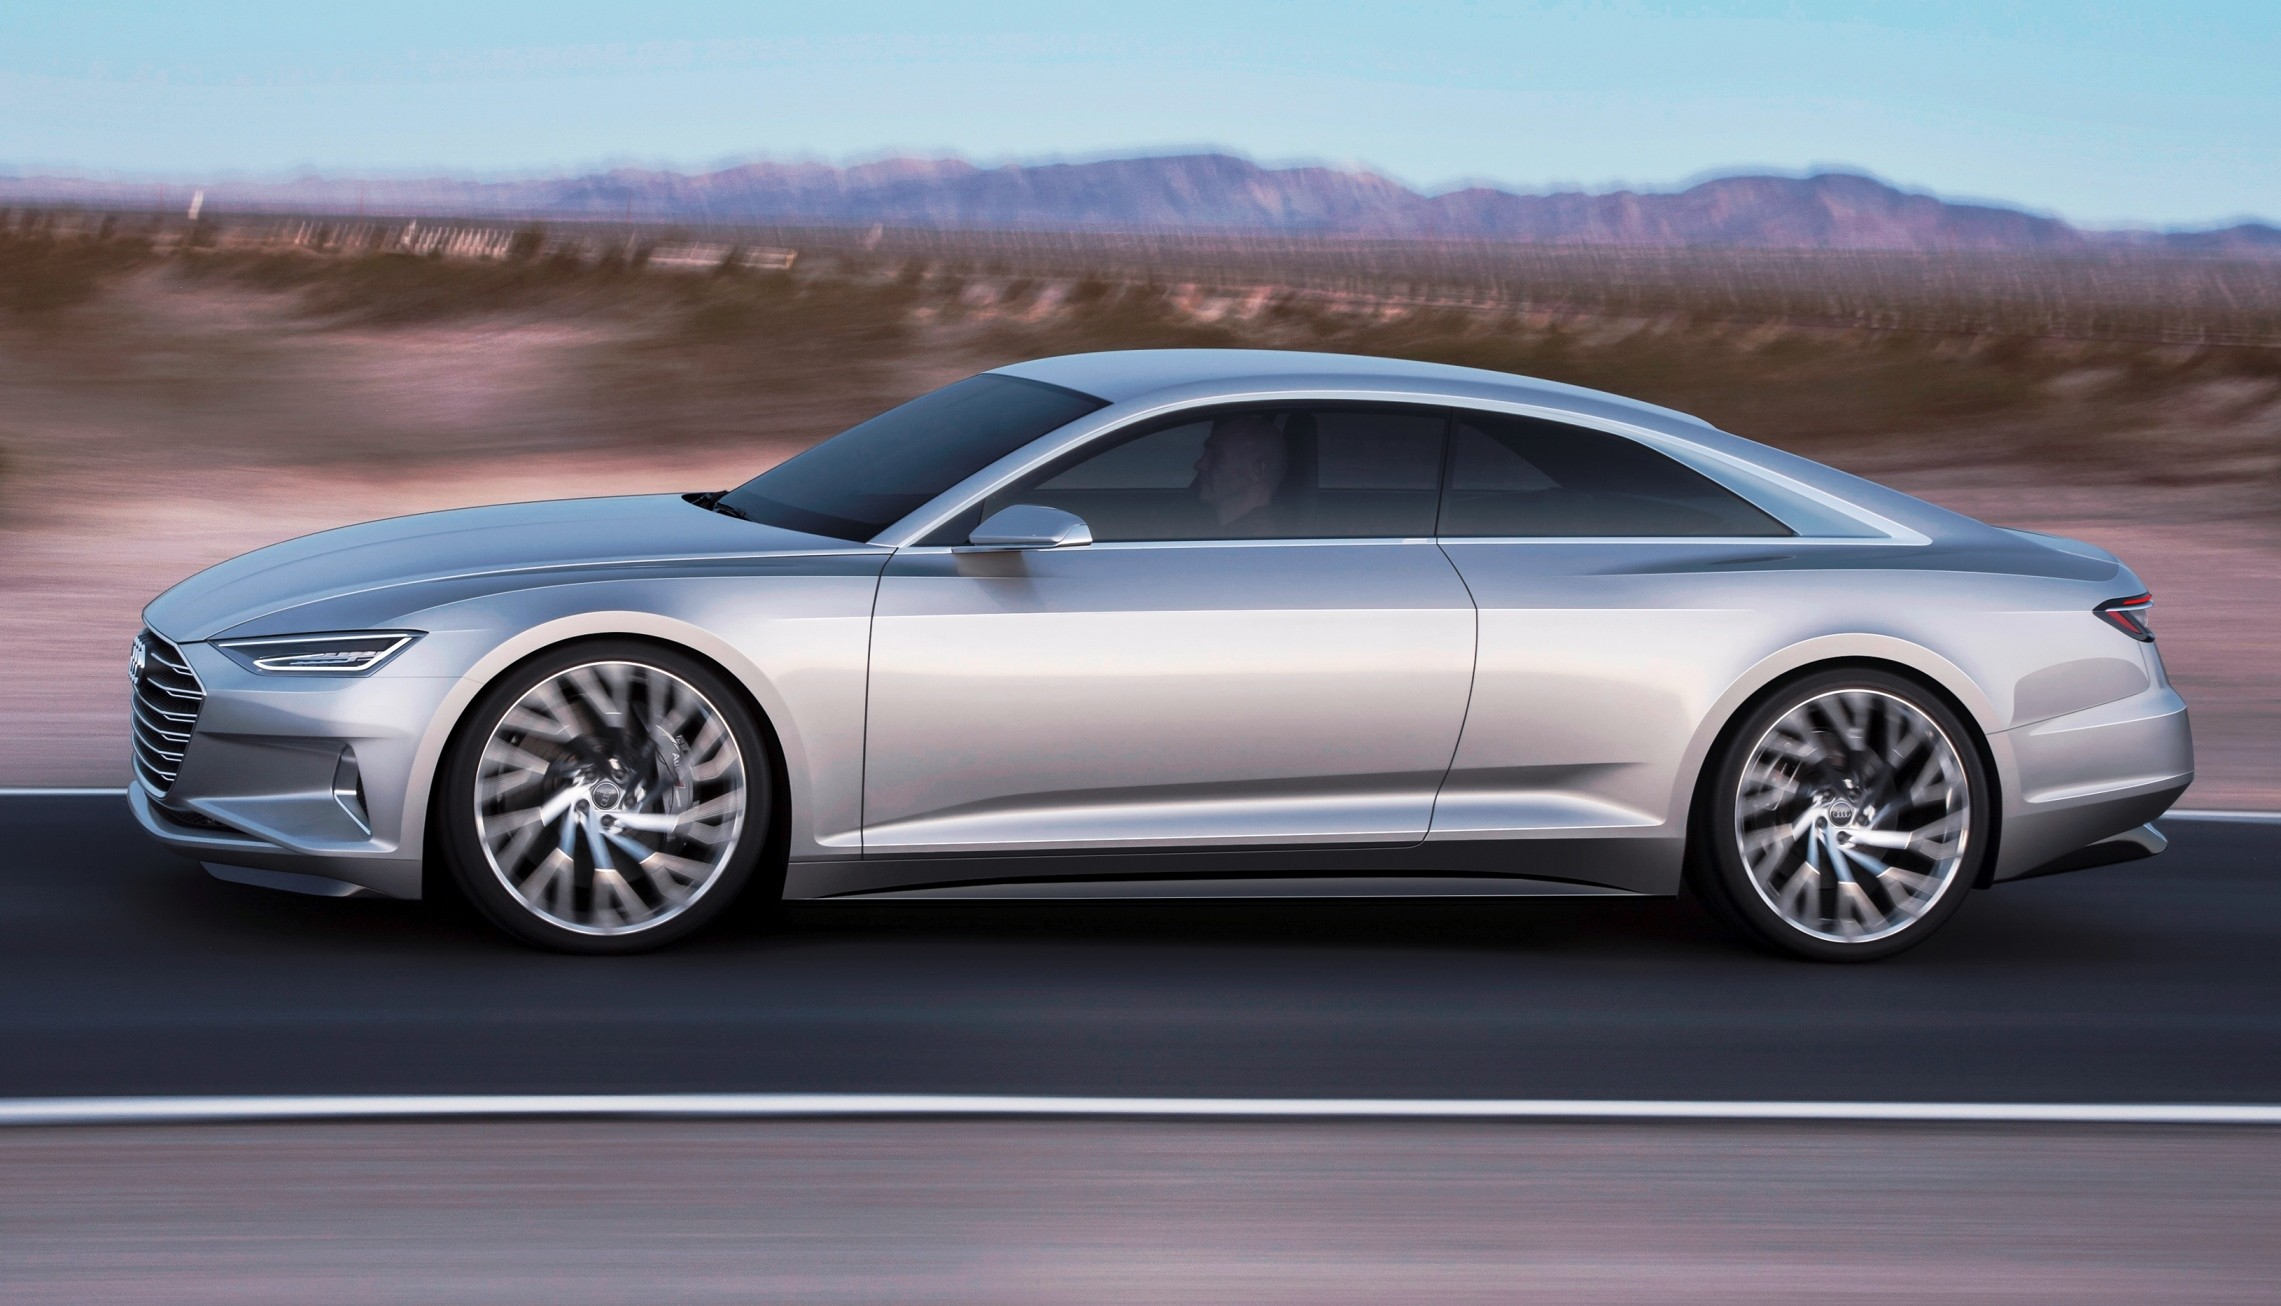 2014 Audi Prologue is Worst of LA 2014 28